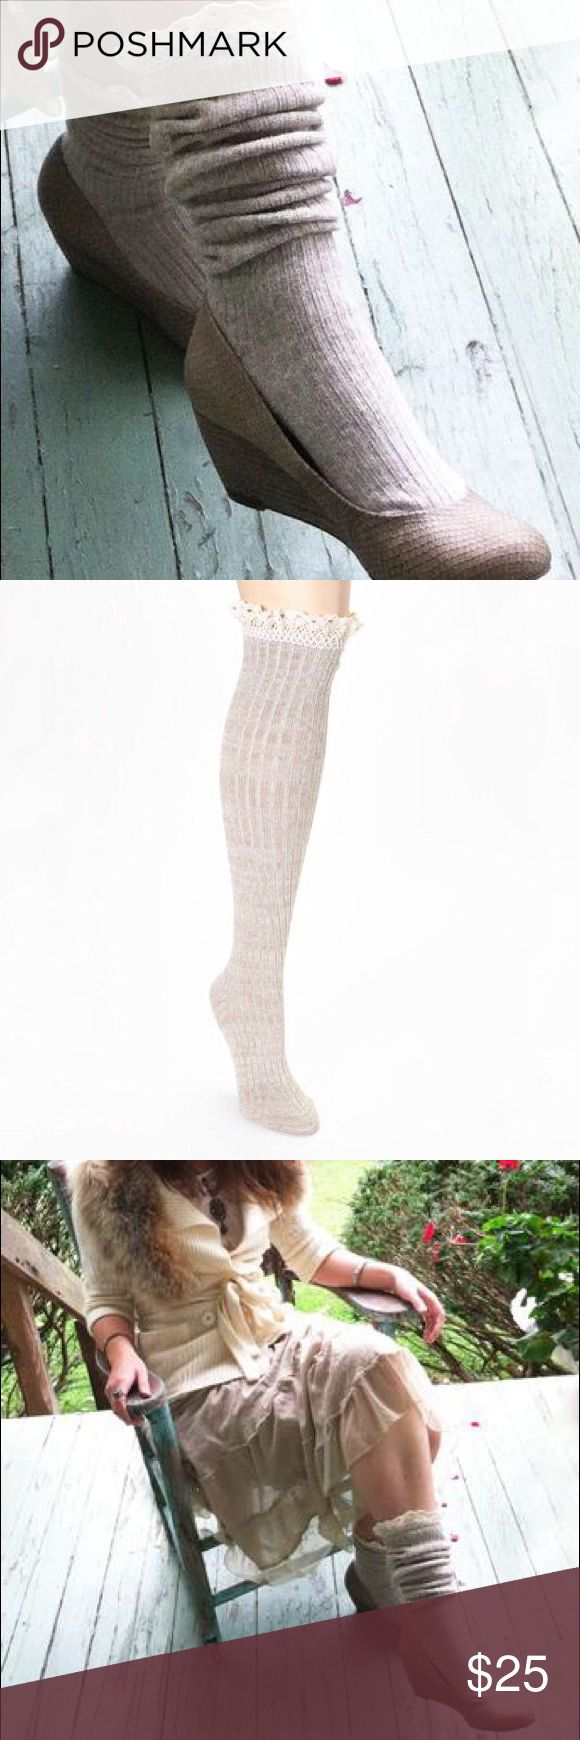 🆕JUST IN!Heather Oatmeal LaceTrimKnee-High Socks Knit from soft, stretchy cotton with dainty lace trim. The Annabell lace-trim classic oatmeal knee socks.  Perfect for wearing with boots for a finishing touch, over jeans or peeking out under a dress.  Warm and cozy high quality cotton socks. 80% cotton / 15% nylon / 5% spandex Machine wash; tumble dry Peony and Moss Accessories Hosiery & Socks